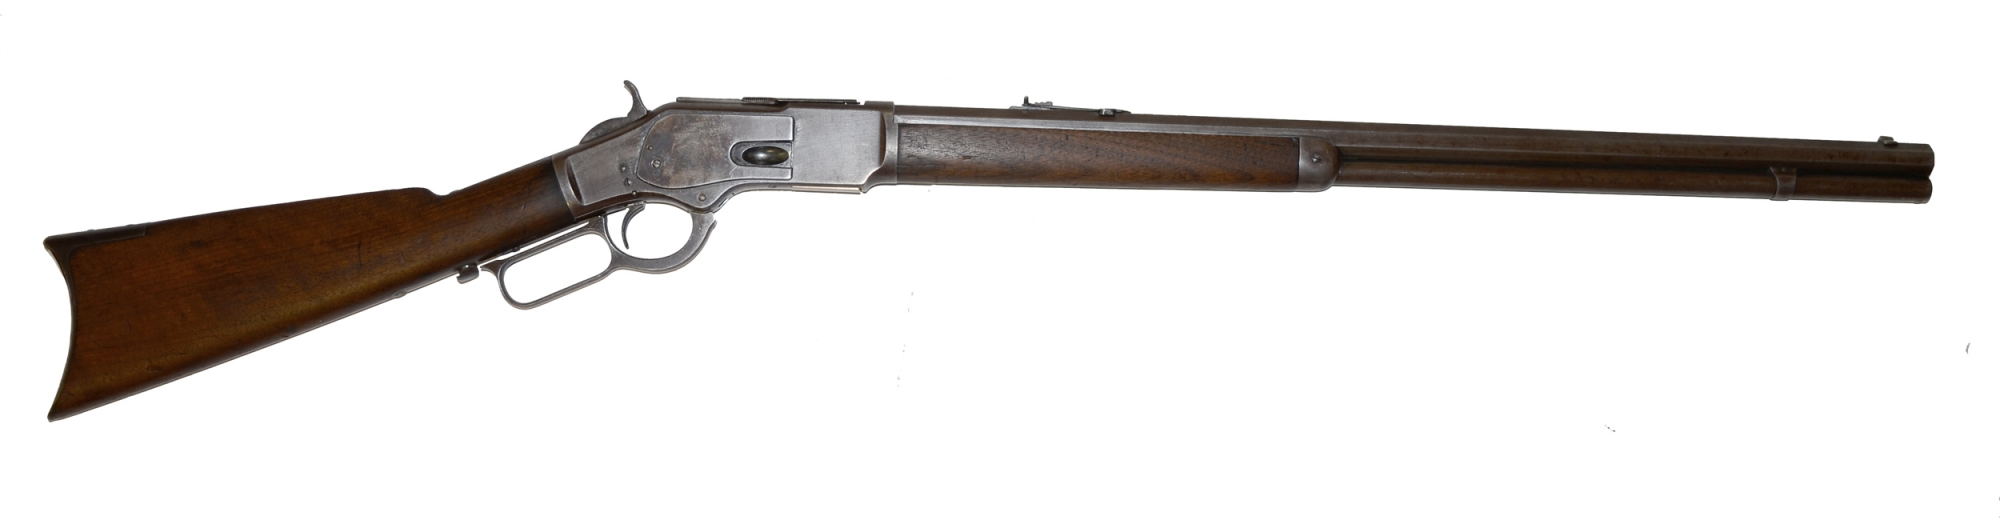 VERY GOOD SECOND VARIATION WINCHESTER MODEL 1873 RIFLEII